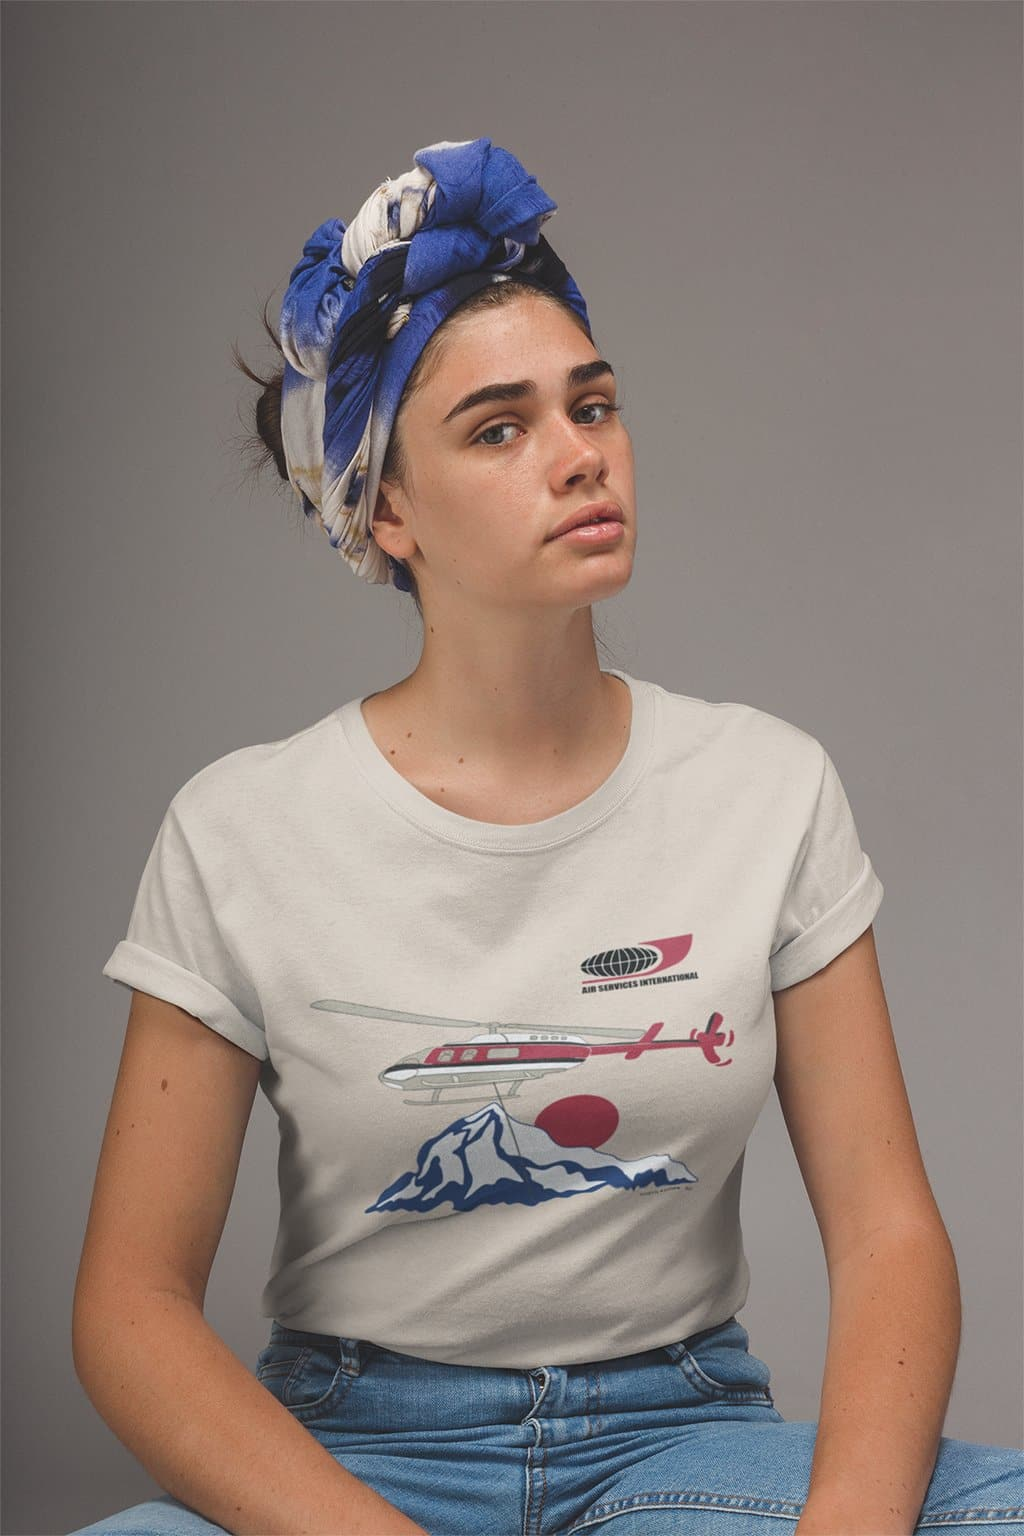 Dynamite Duds Napoleon Dynamite air services International helicopter t-shirt woman